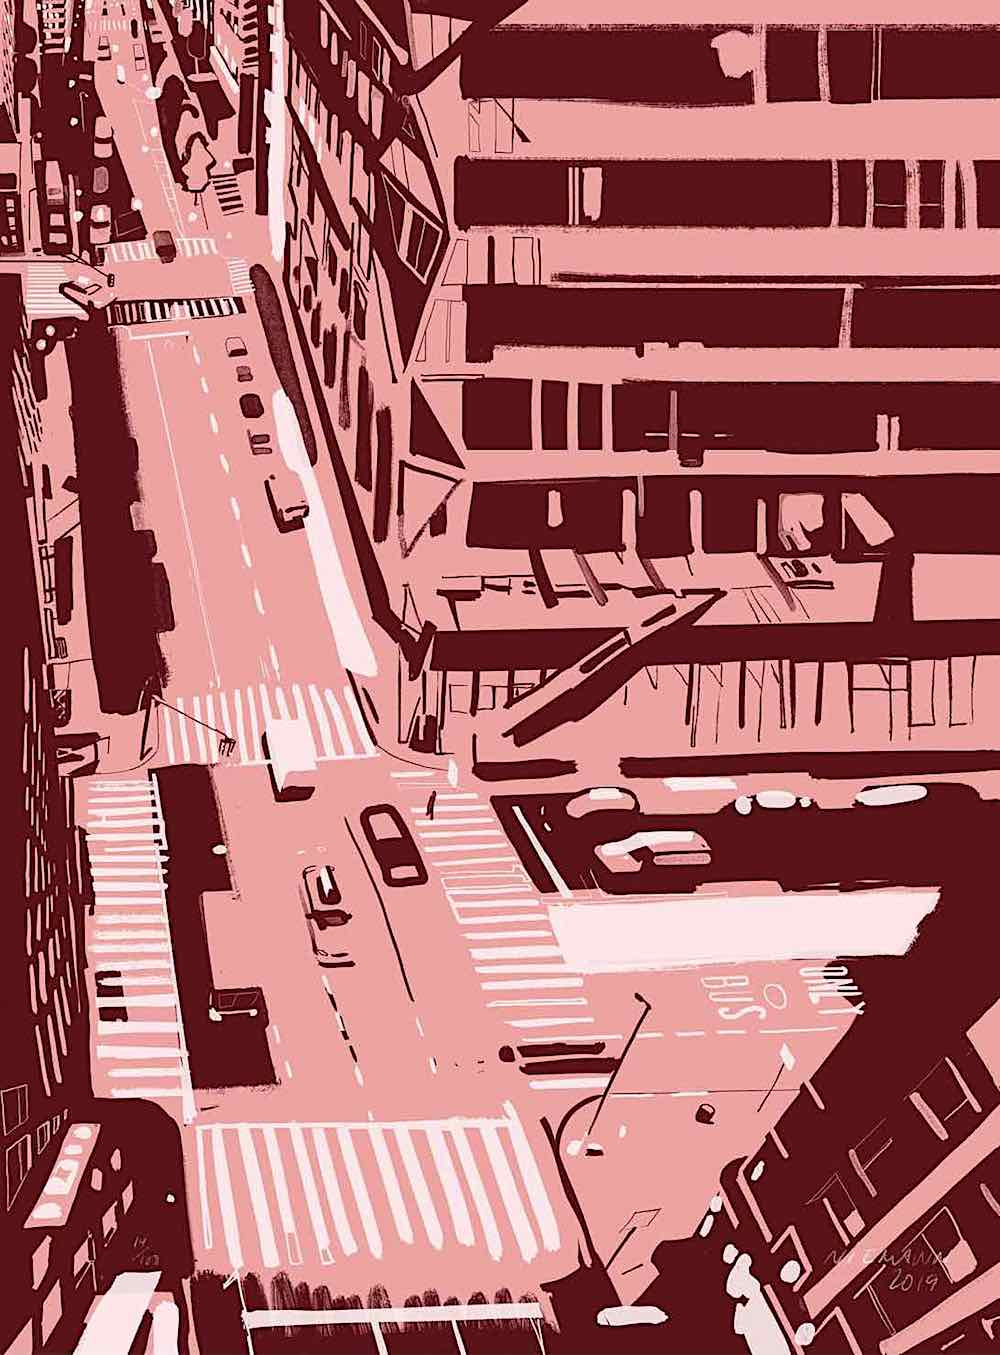 a Christoph Niemann painting, an urban scene from an aerial view in purples